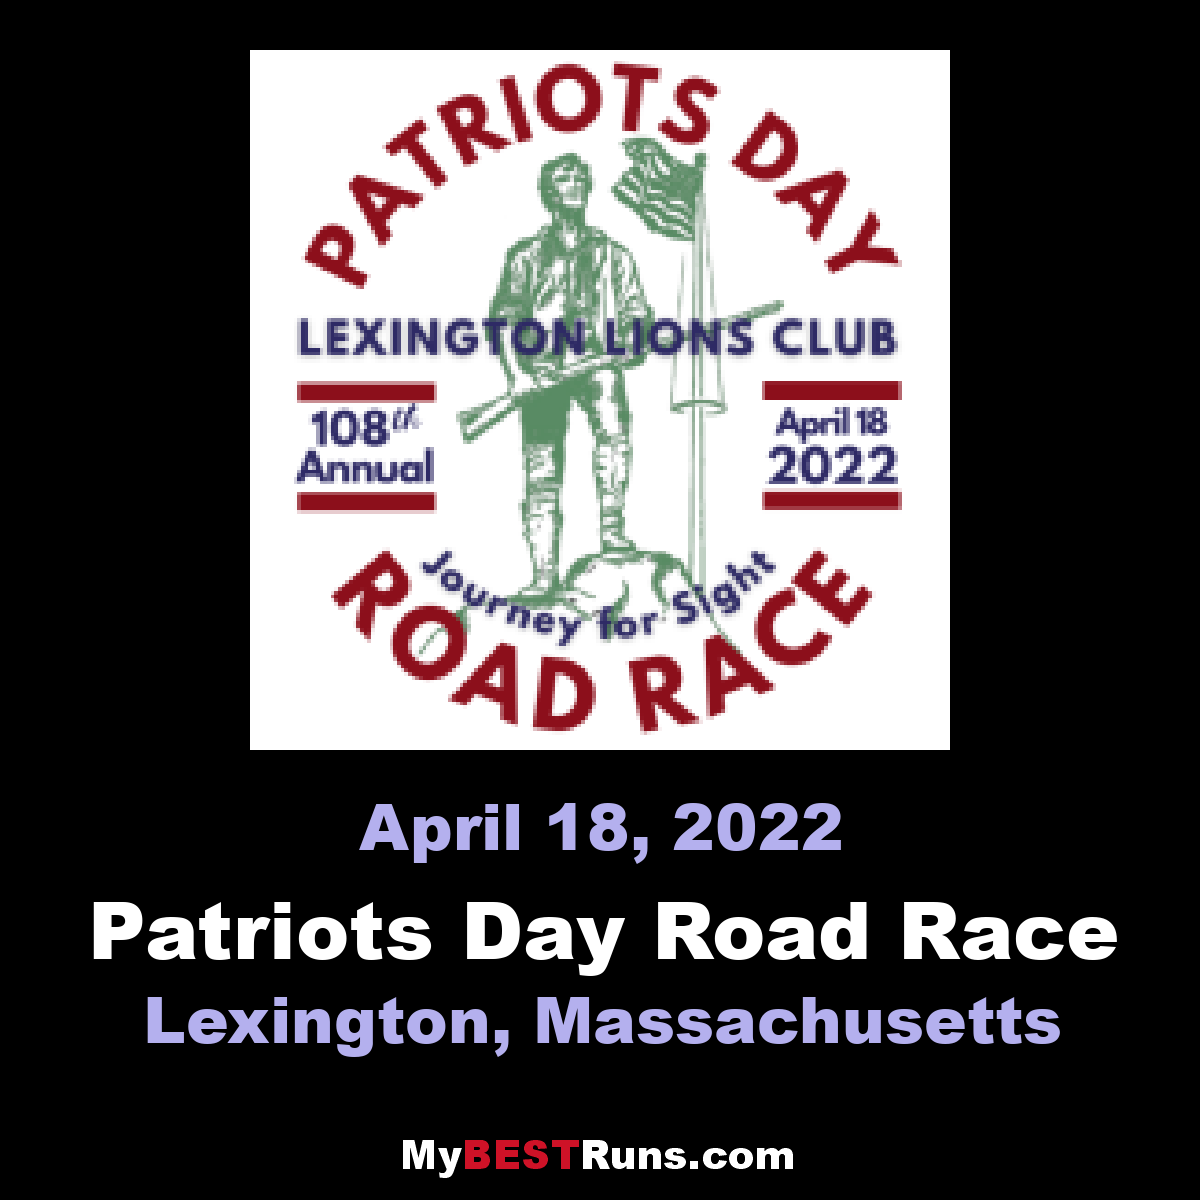 Patriots Day 5 Mile Race